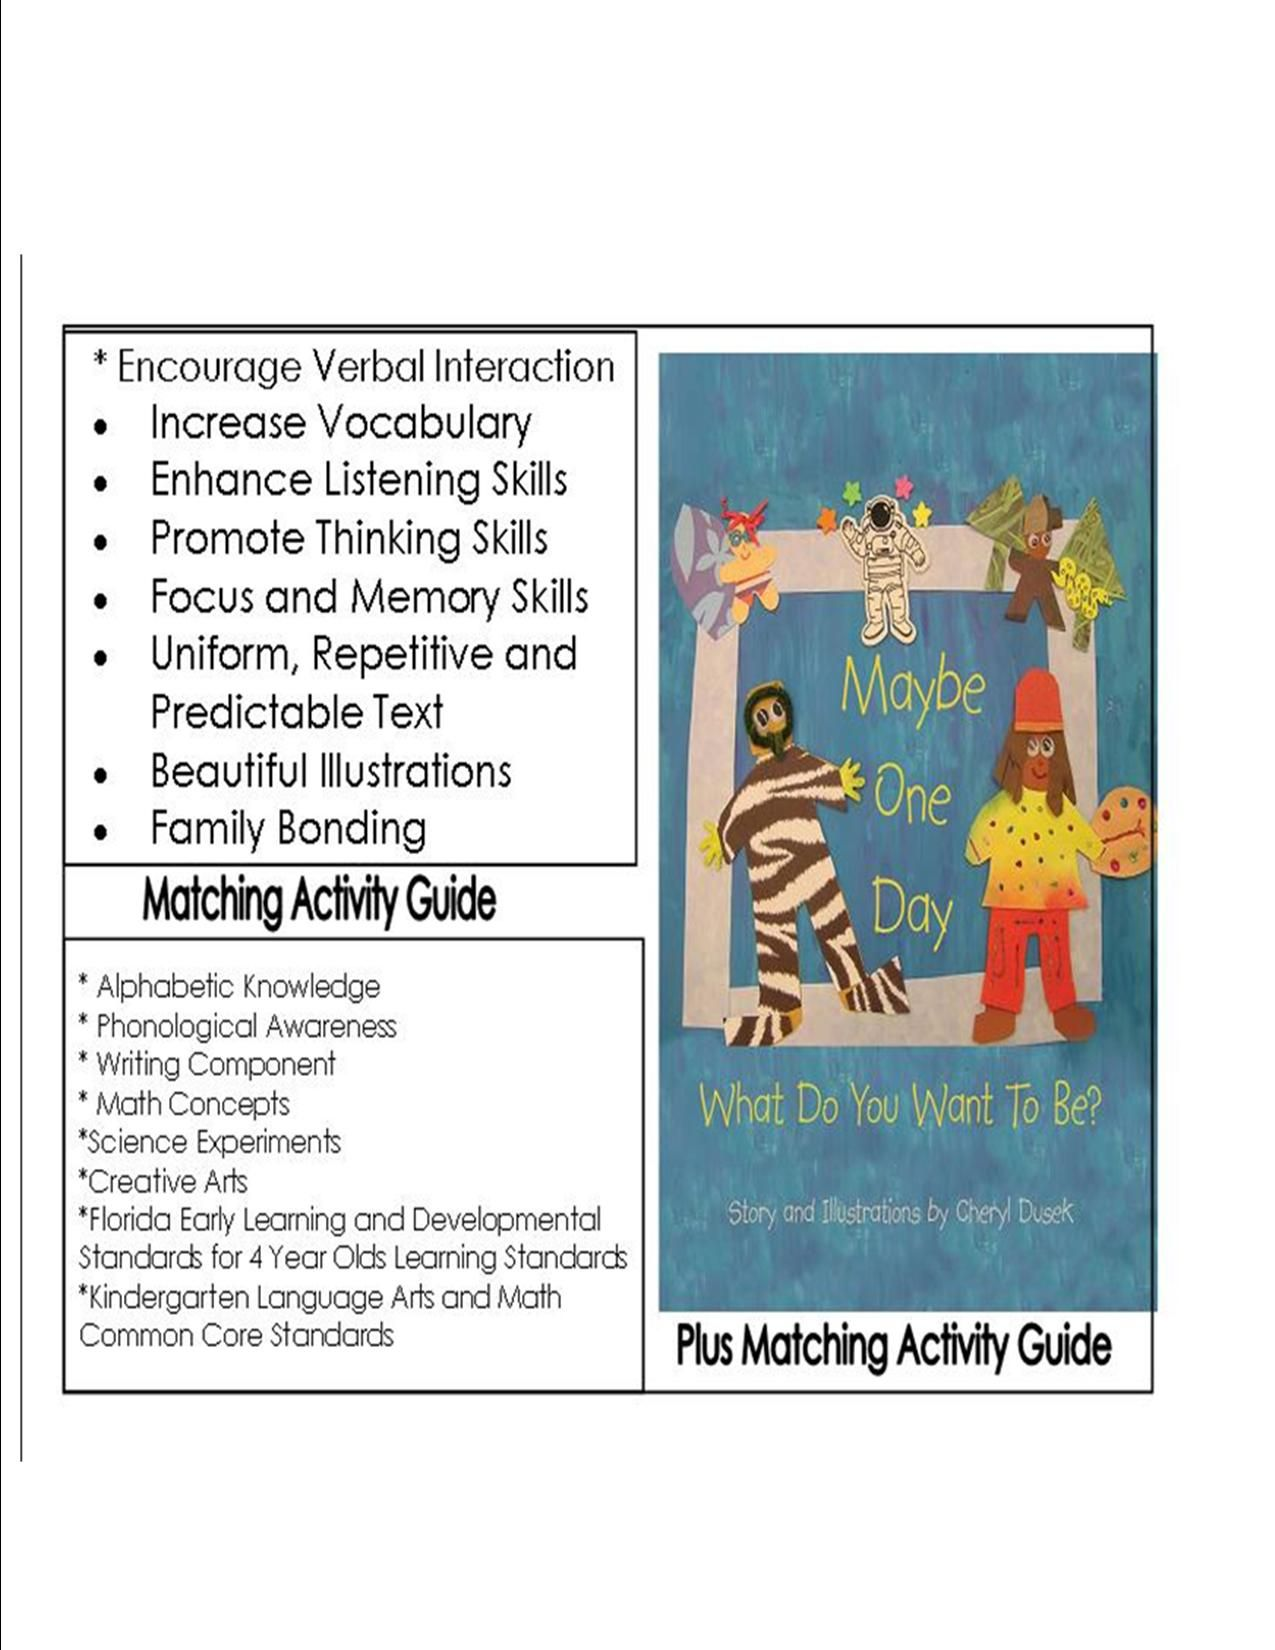 Activity Guide Is Aligned With Florida Early Learning Developmental Standards For Four 4 Year